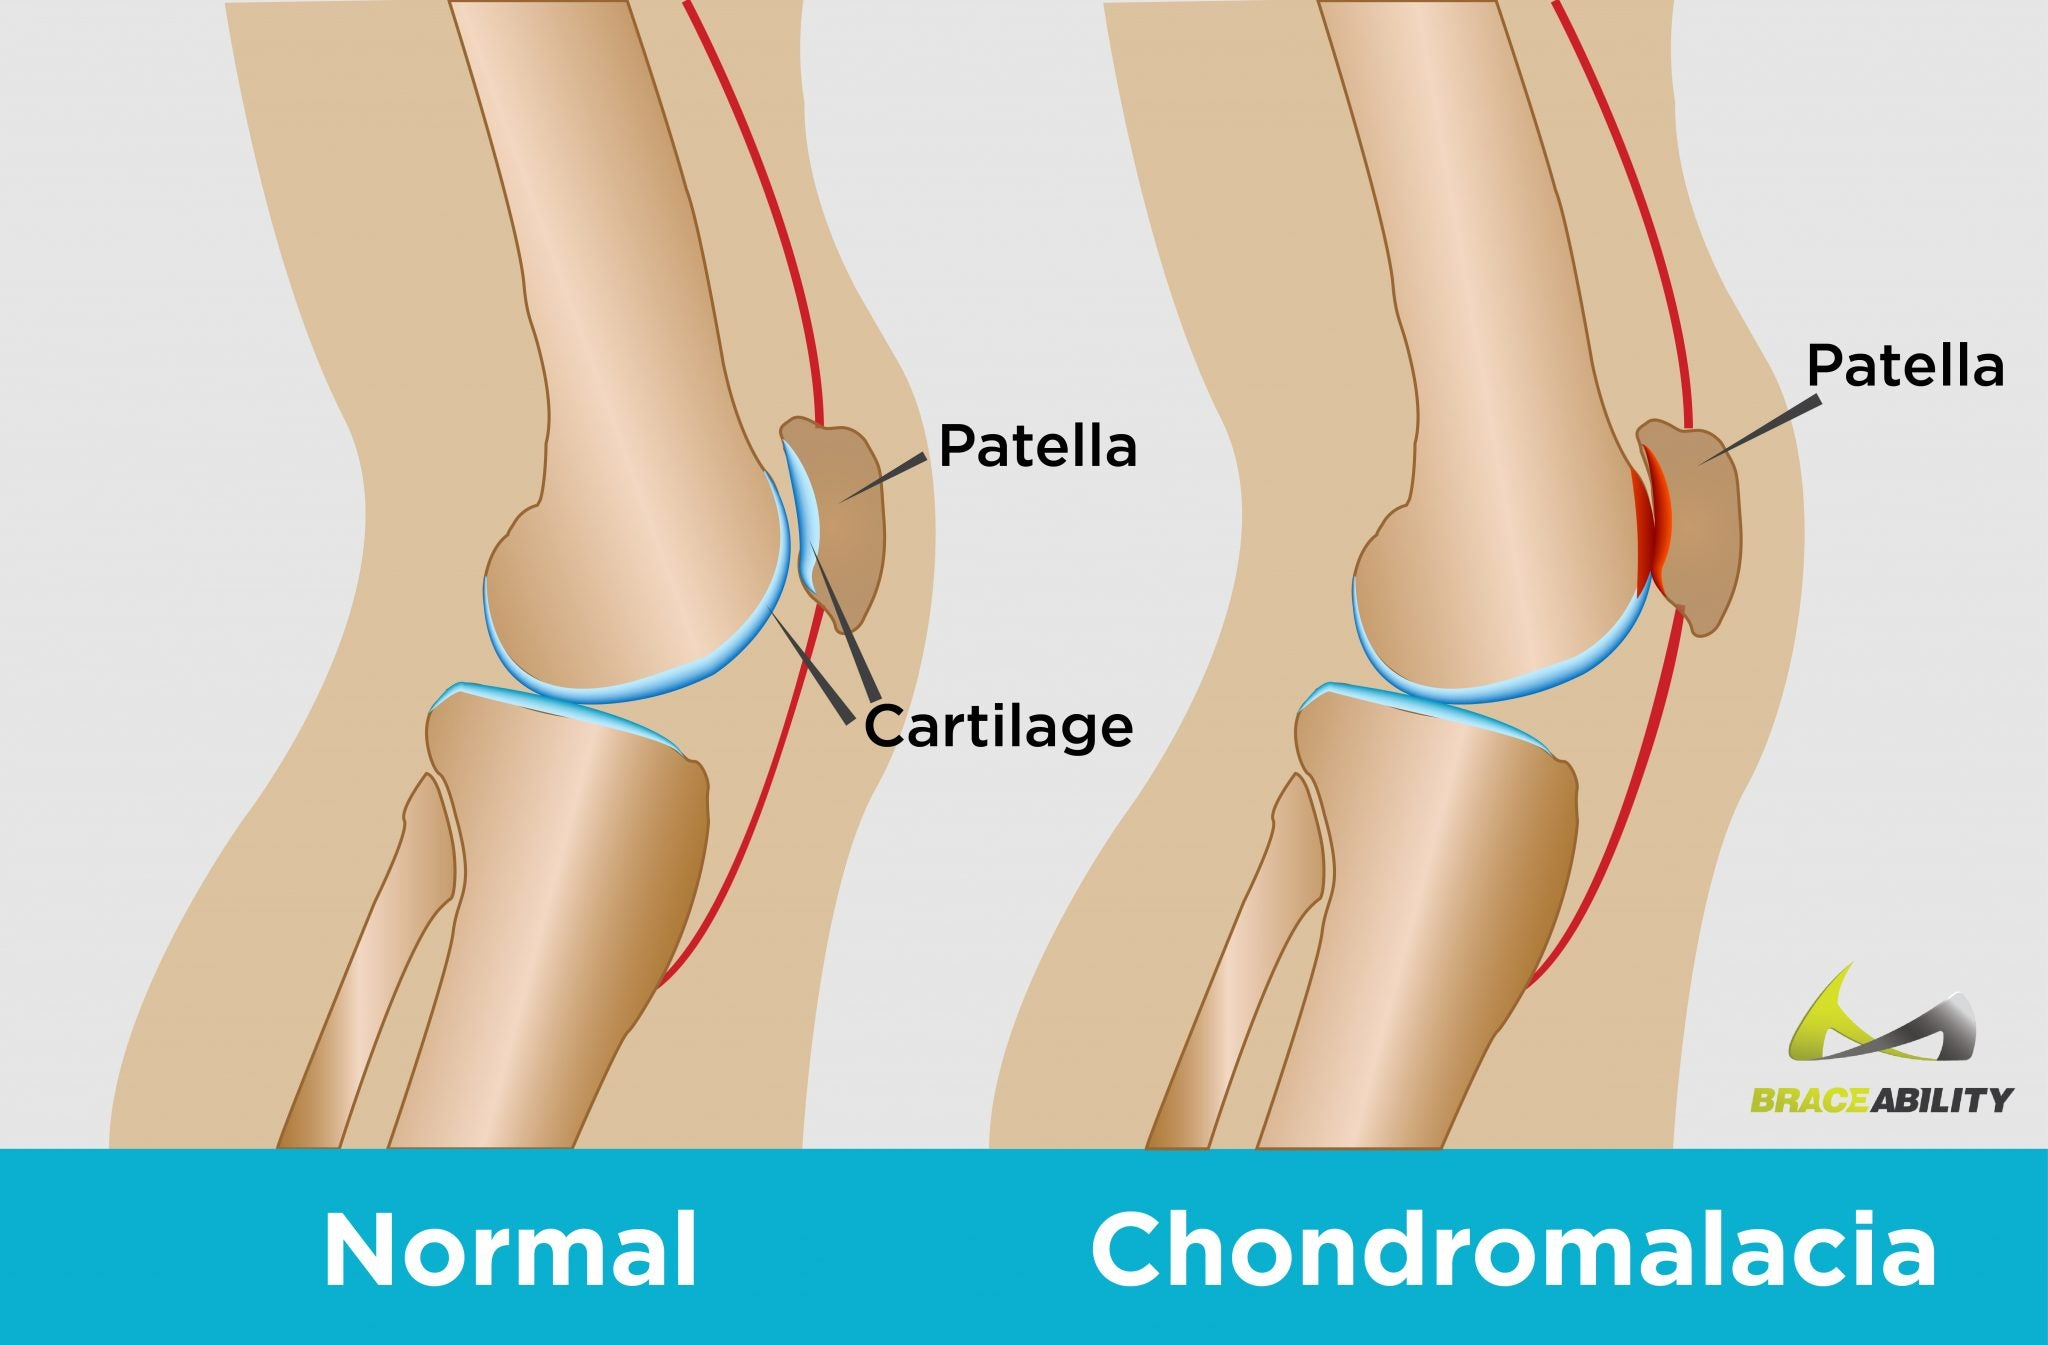 Cartilage in the knee deteriorates over time causing chondromalacia behind the kneecap